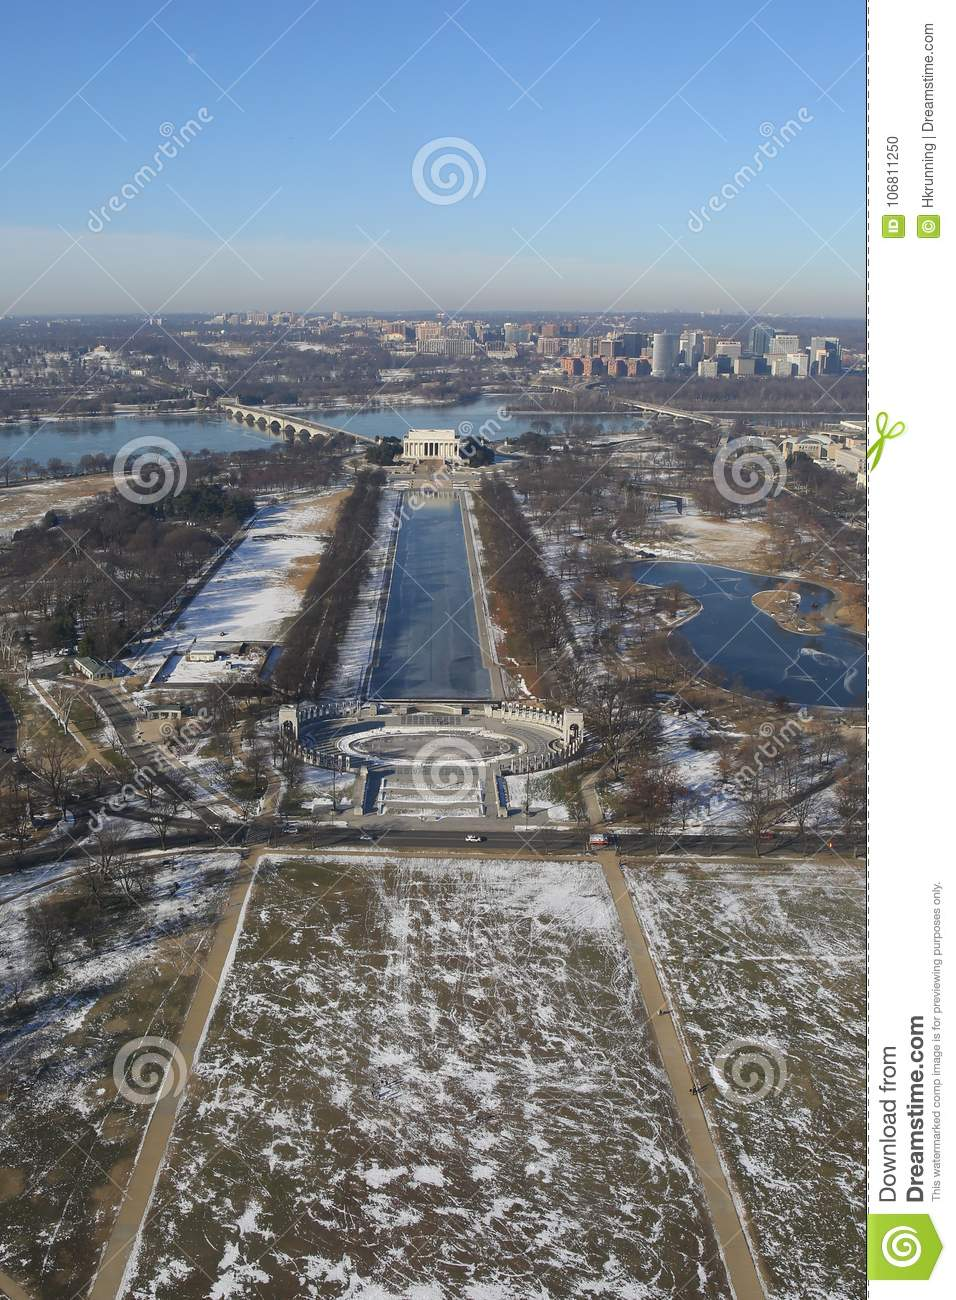 Washington DC in winter, Aerial View